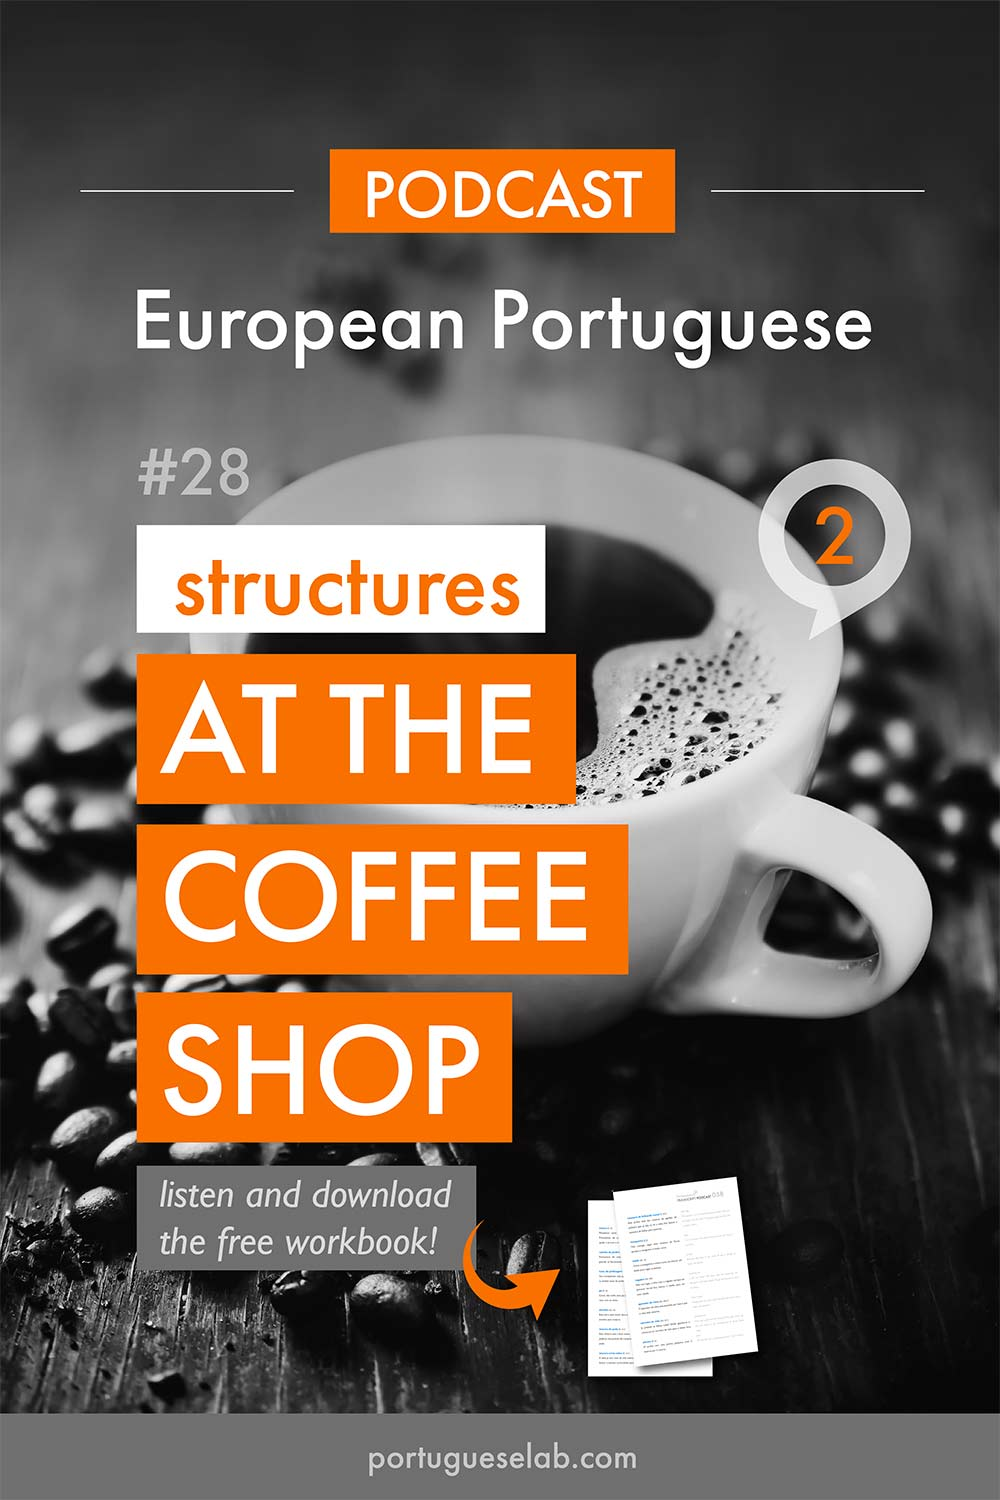 Portuguese-Lab-Podcast-European-Portuguese-28-At-the-coffee-shop-structures-1.jpg